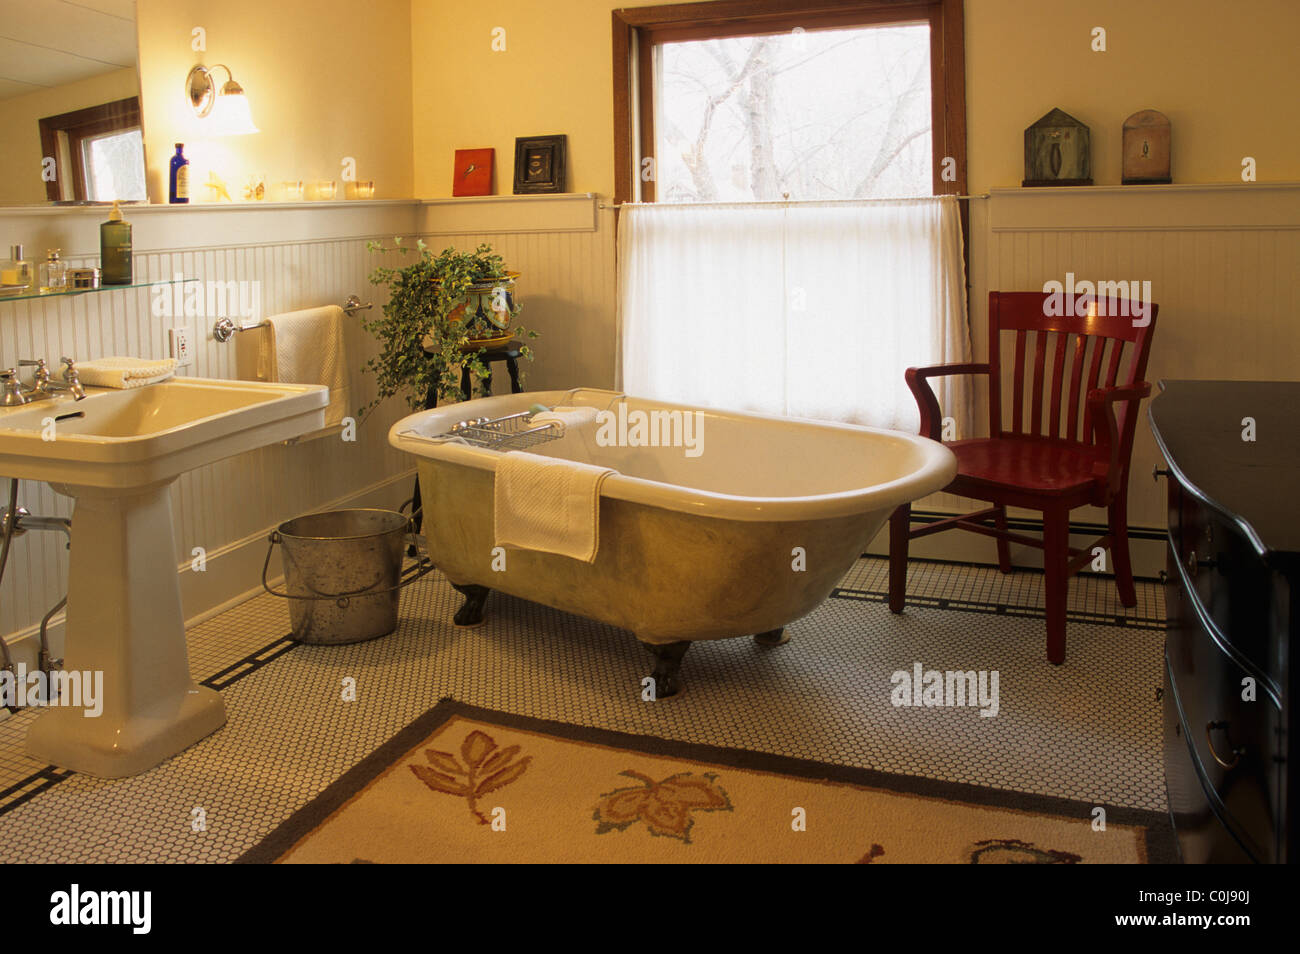 OLD FASHIONED CAST IRON CLAWFOOT BATHTUB AND PEDESTAL SINK IN BATHROOM OF  1920u0027S BUNGALOW STYLE HOME IN MINNESOTA